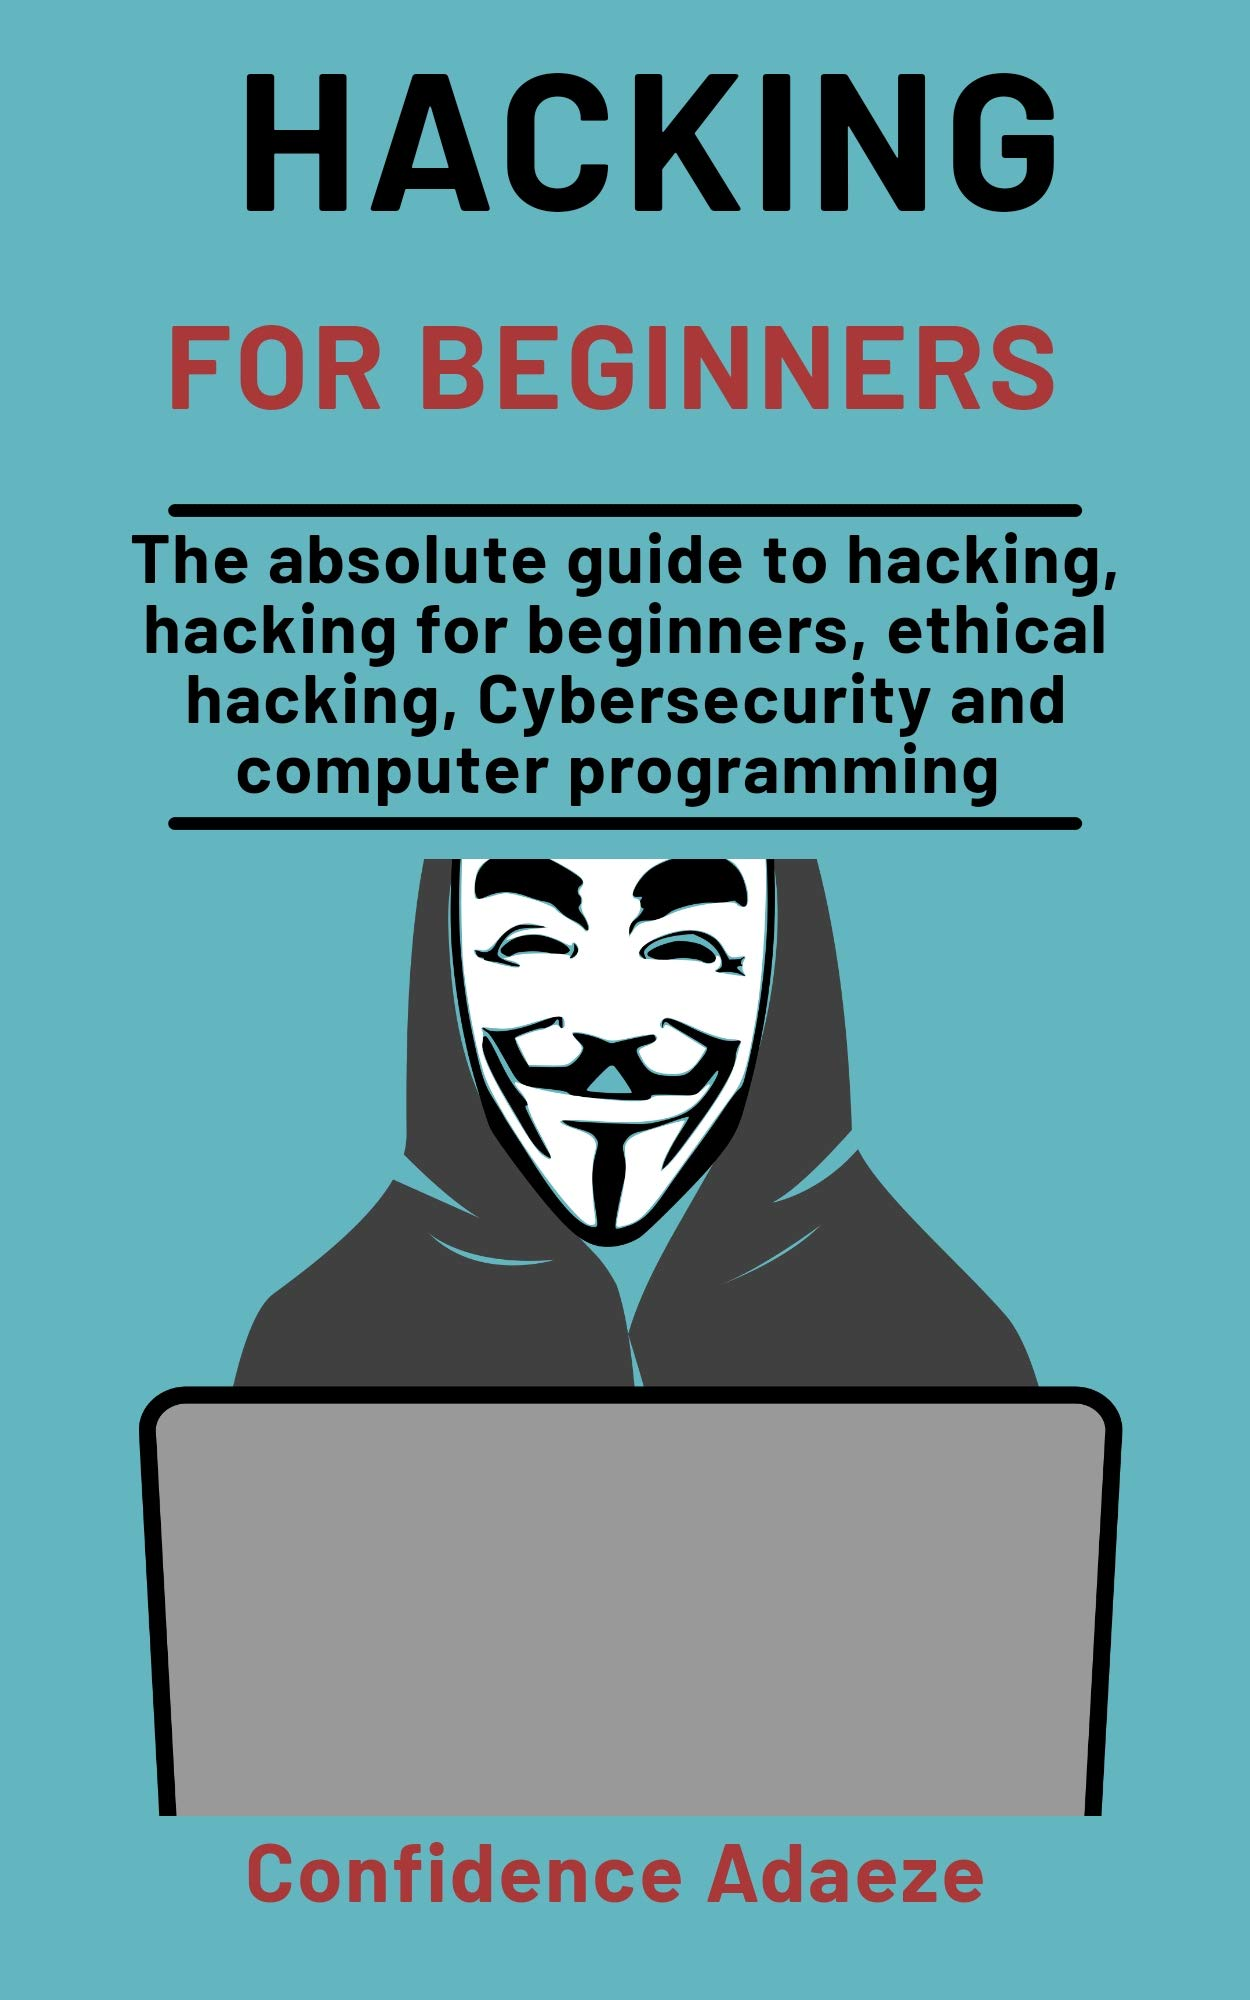 Hacking For Beginners: The Absolute Guide To Hacking, Hacking For Beginners, Ethical Hacking, Cybersecurity And Computer Programming